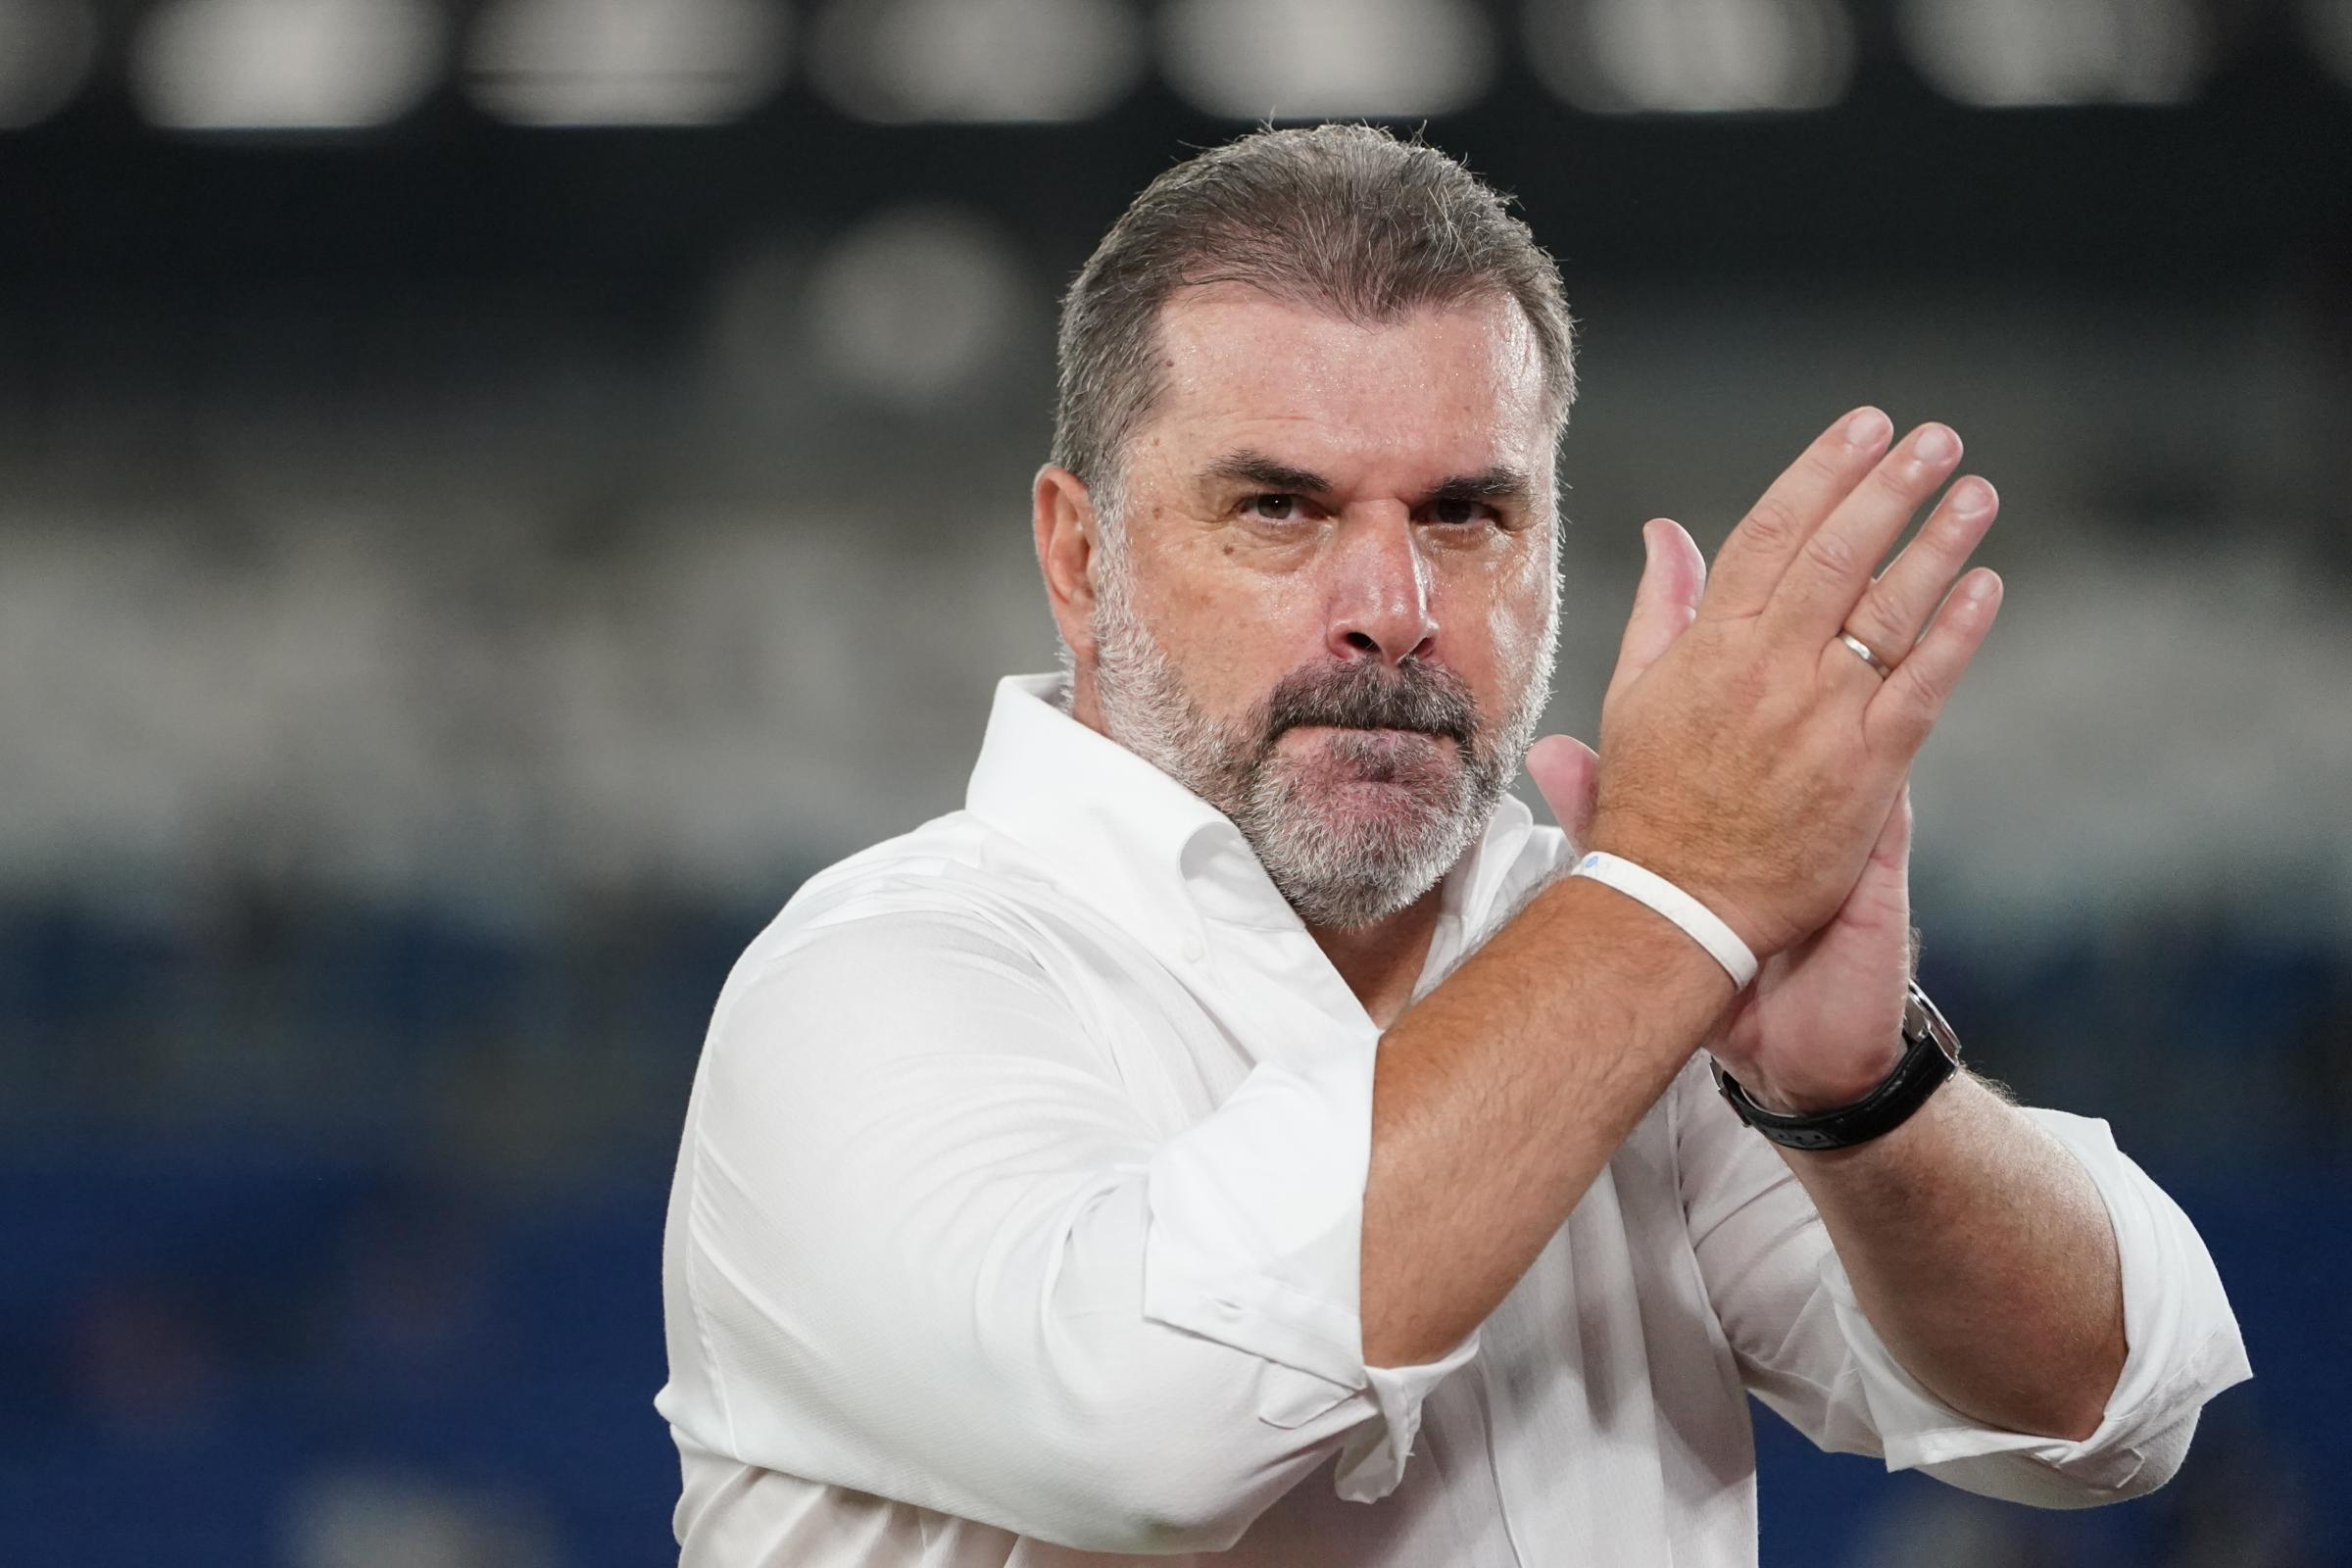 Ange Postecoglou confirmed as new Celtic manager: 'Hoops one of THE names in world football'